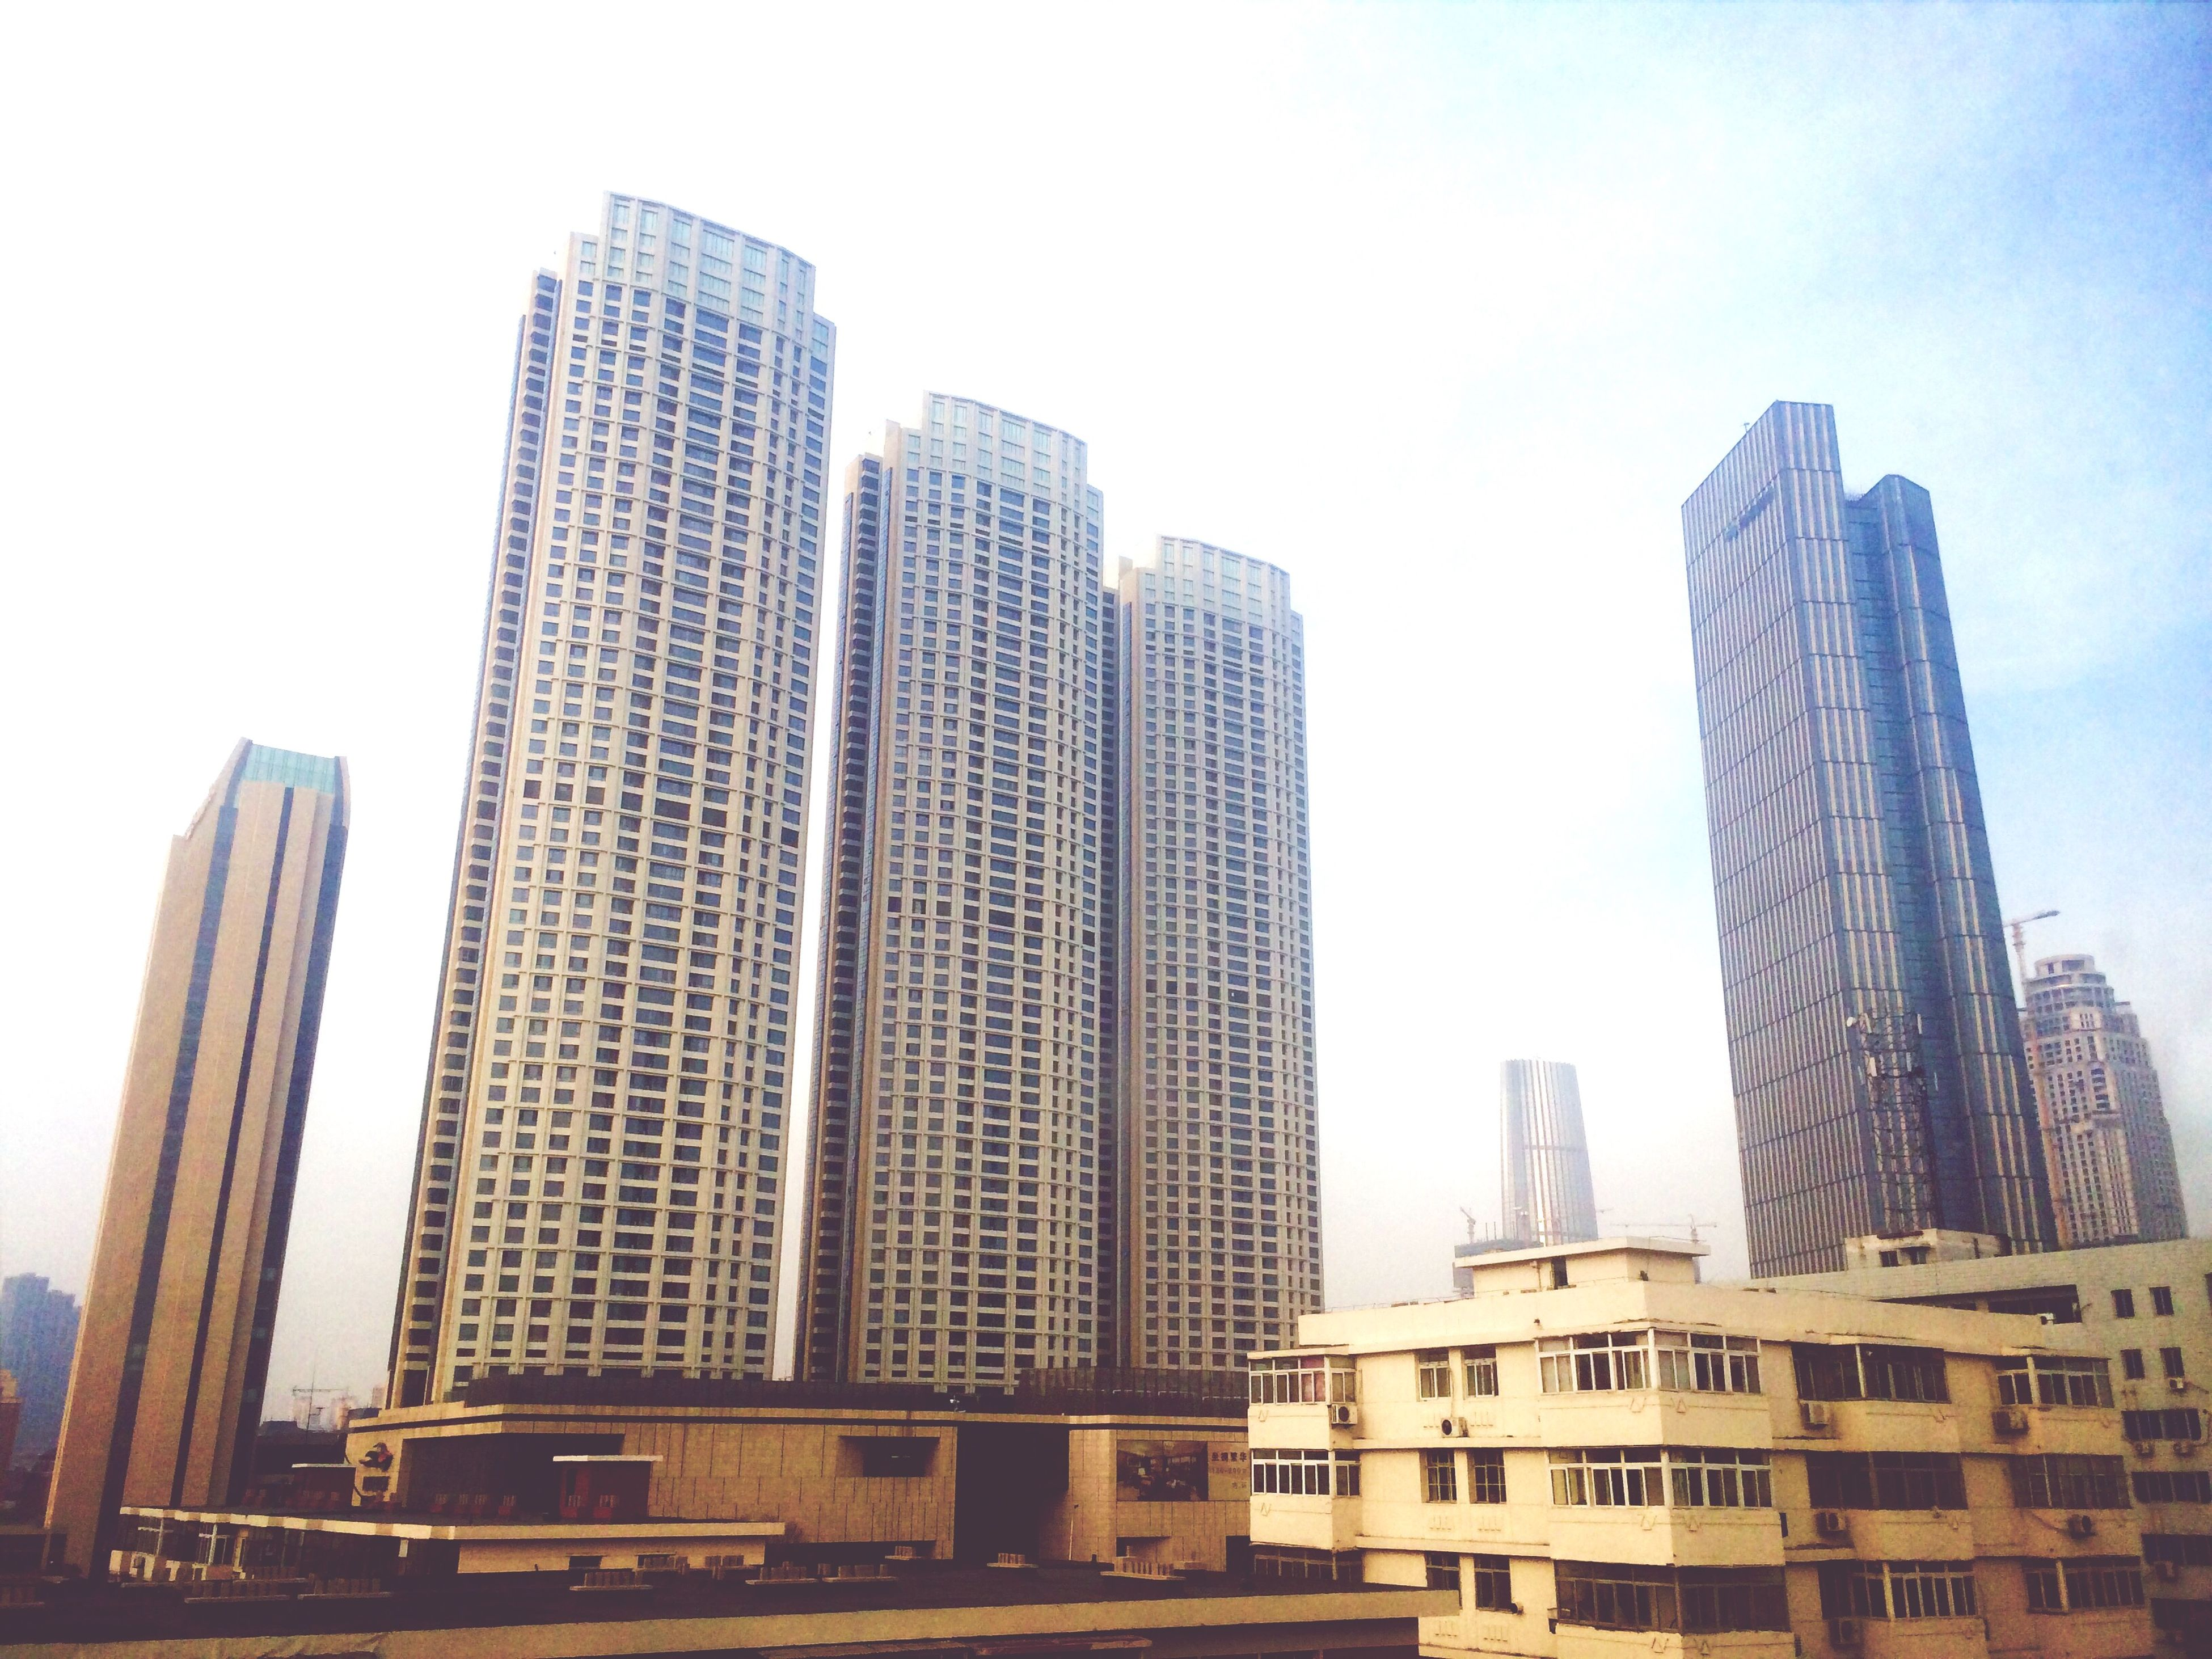 architecture, built structure, building exterior, skyscraper, city, tall - high, modern, office building, low angle view, tower, clear sky, development, sky, building, capital cities, tall, financial district, urban skyline, day, city life